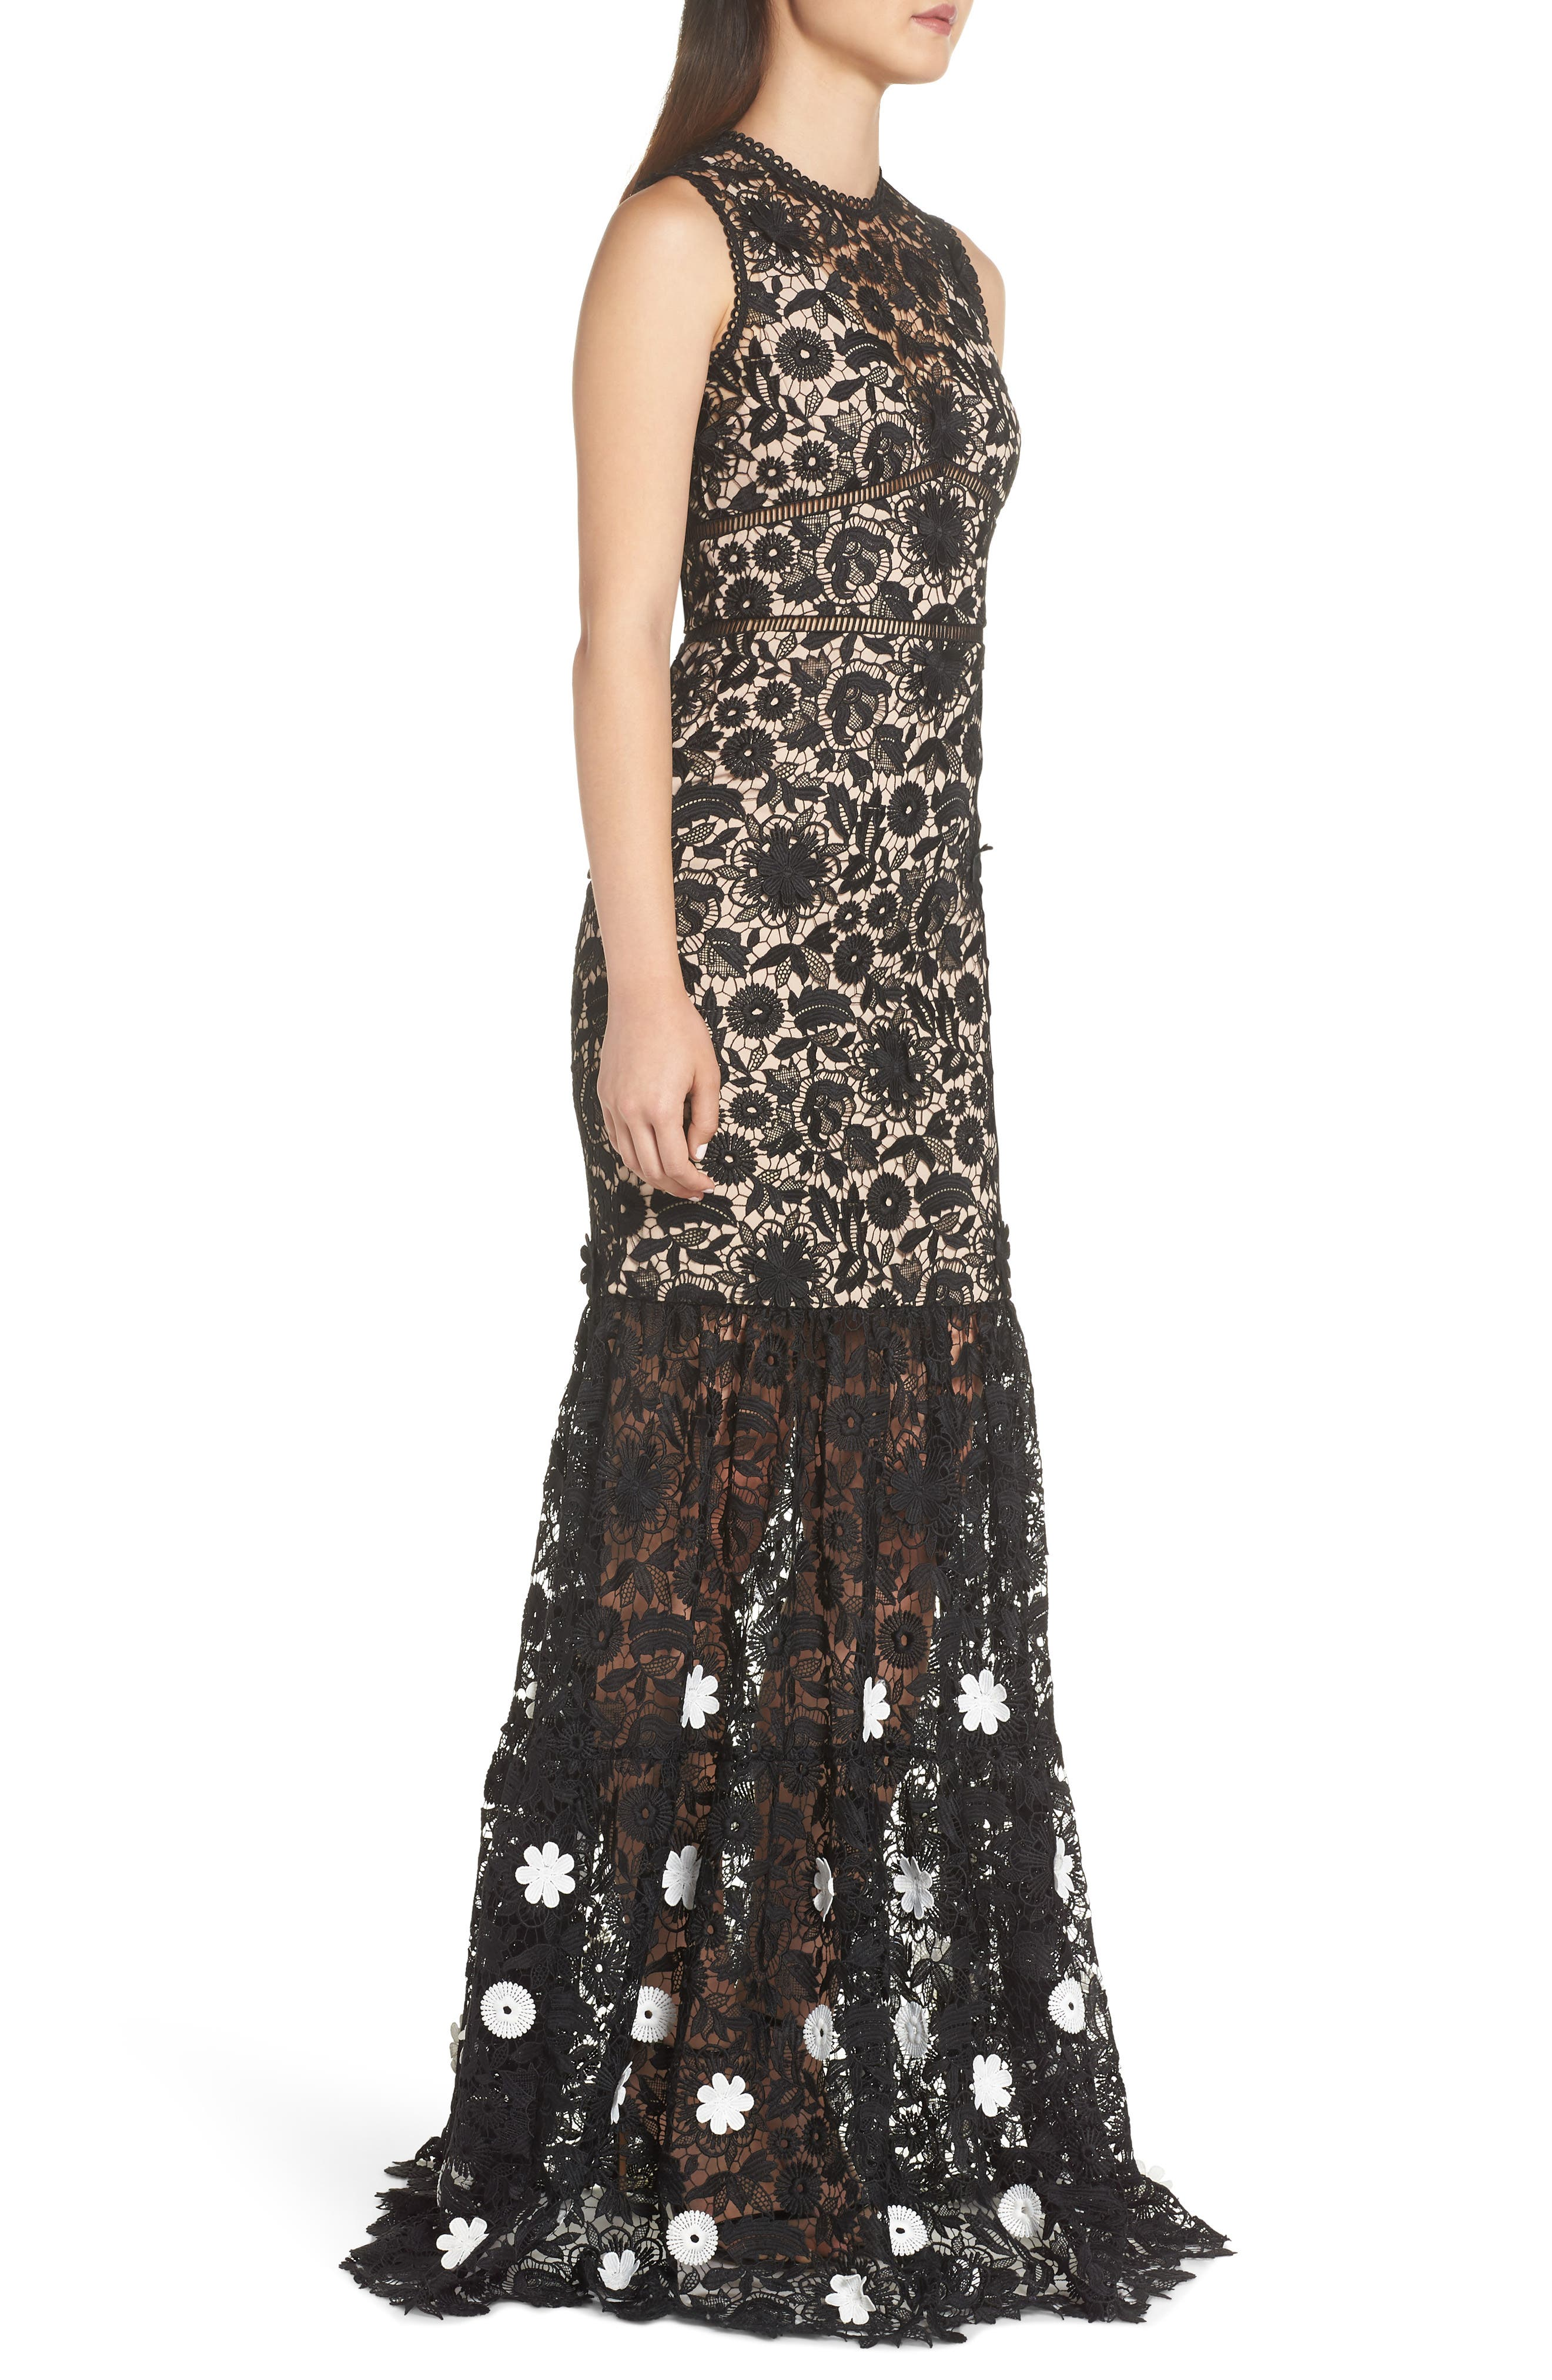 3D Black & White Floral Lace Gown,                             Alternate thumbnail 3, color,                             JET IVORY COMBO